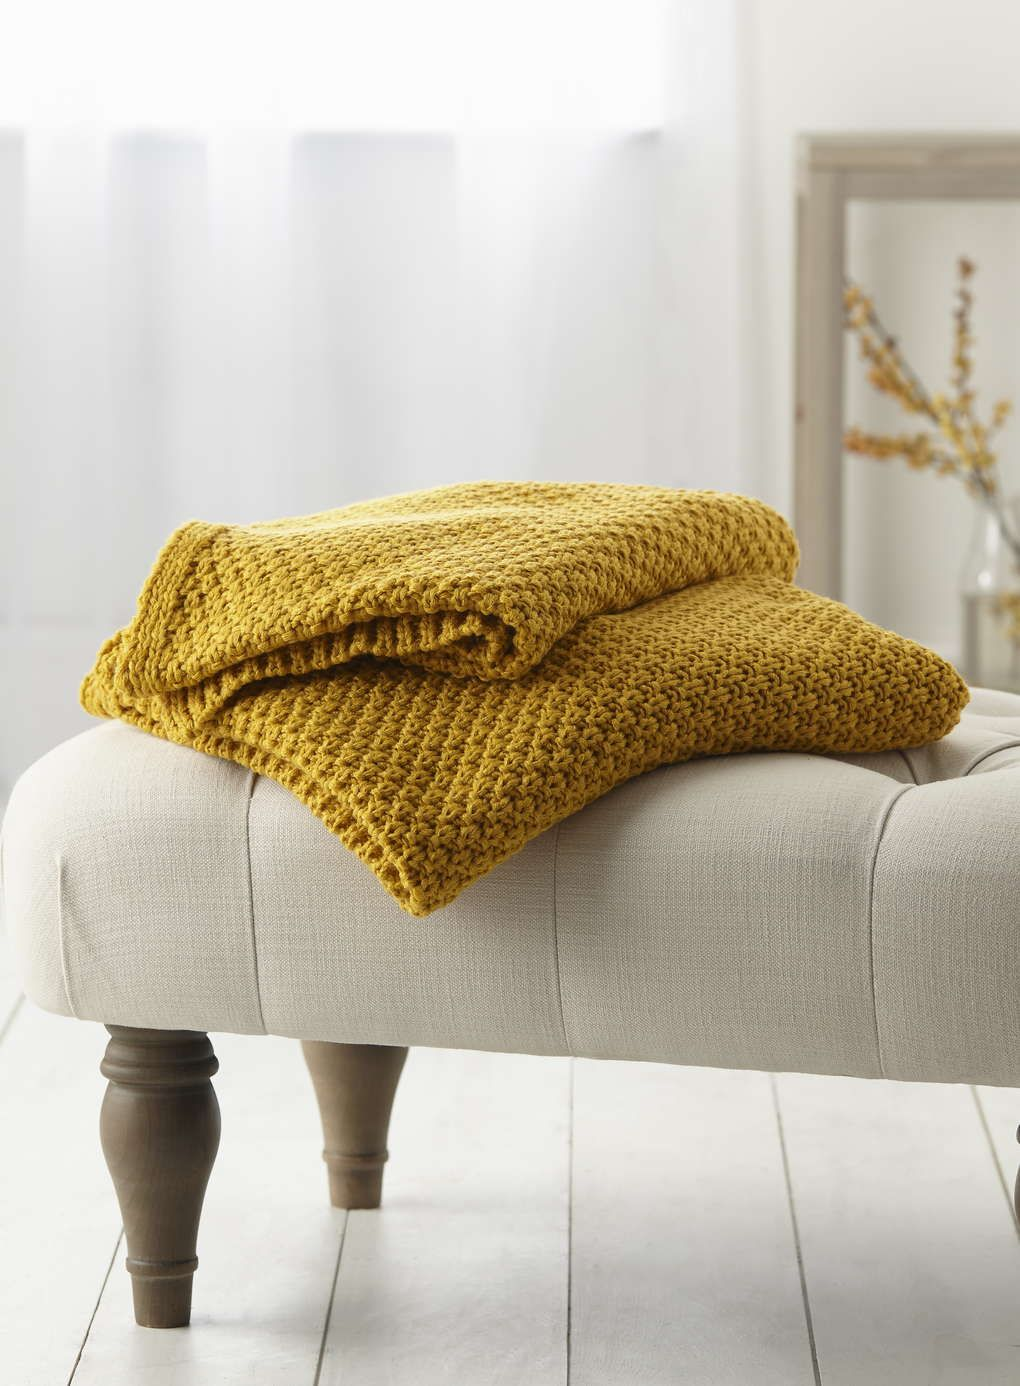 Mustard Yellow Throw Blanket Fascinating Mustard Waffle Knit Throw  Bhs  Throws And Rugs  Pinterest  Bhs Review